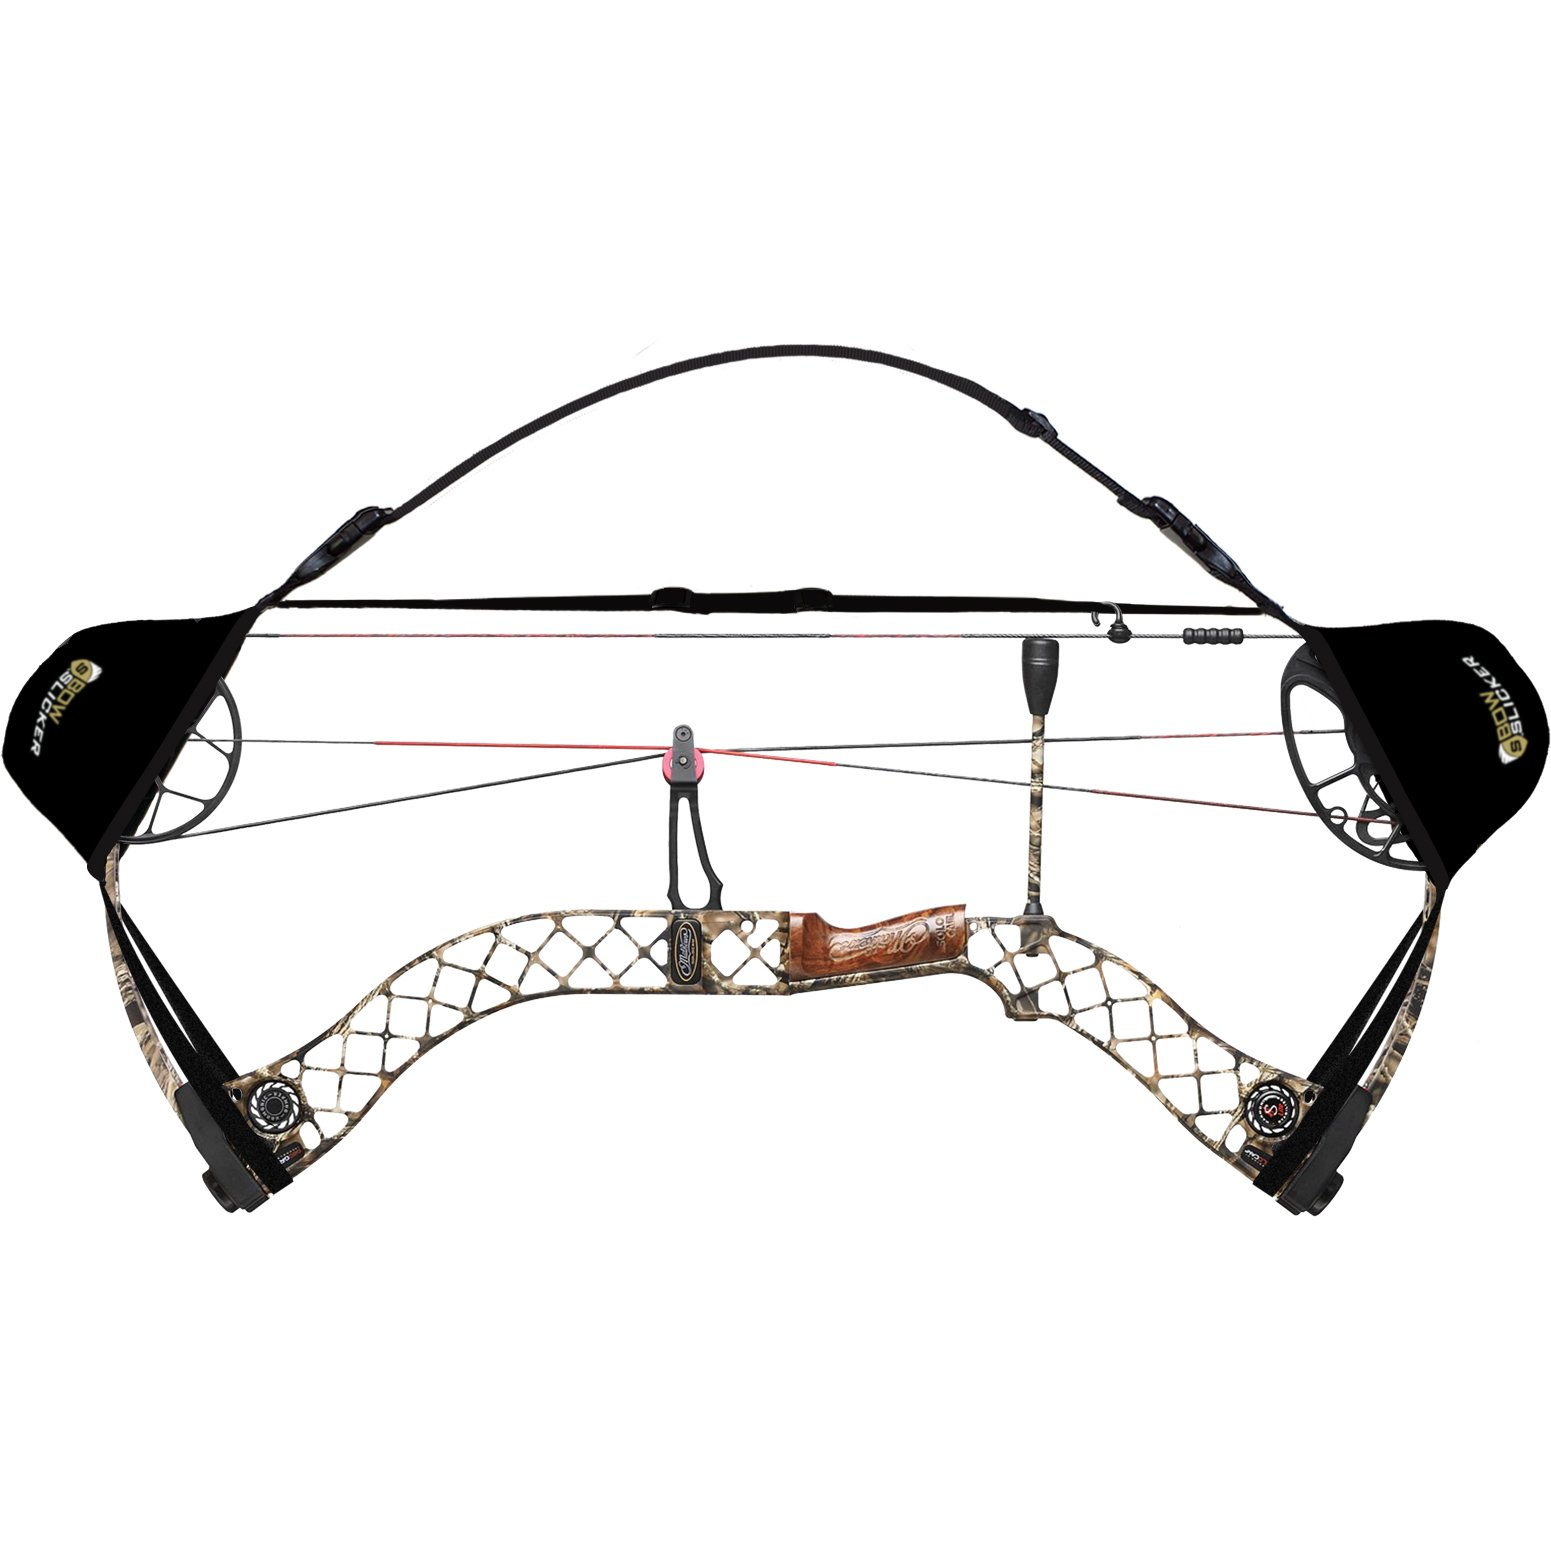 BowSlicker Bow Sling and Cam Guards- Black by Slicker (Image #2)